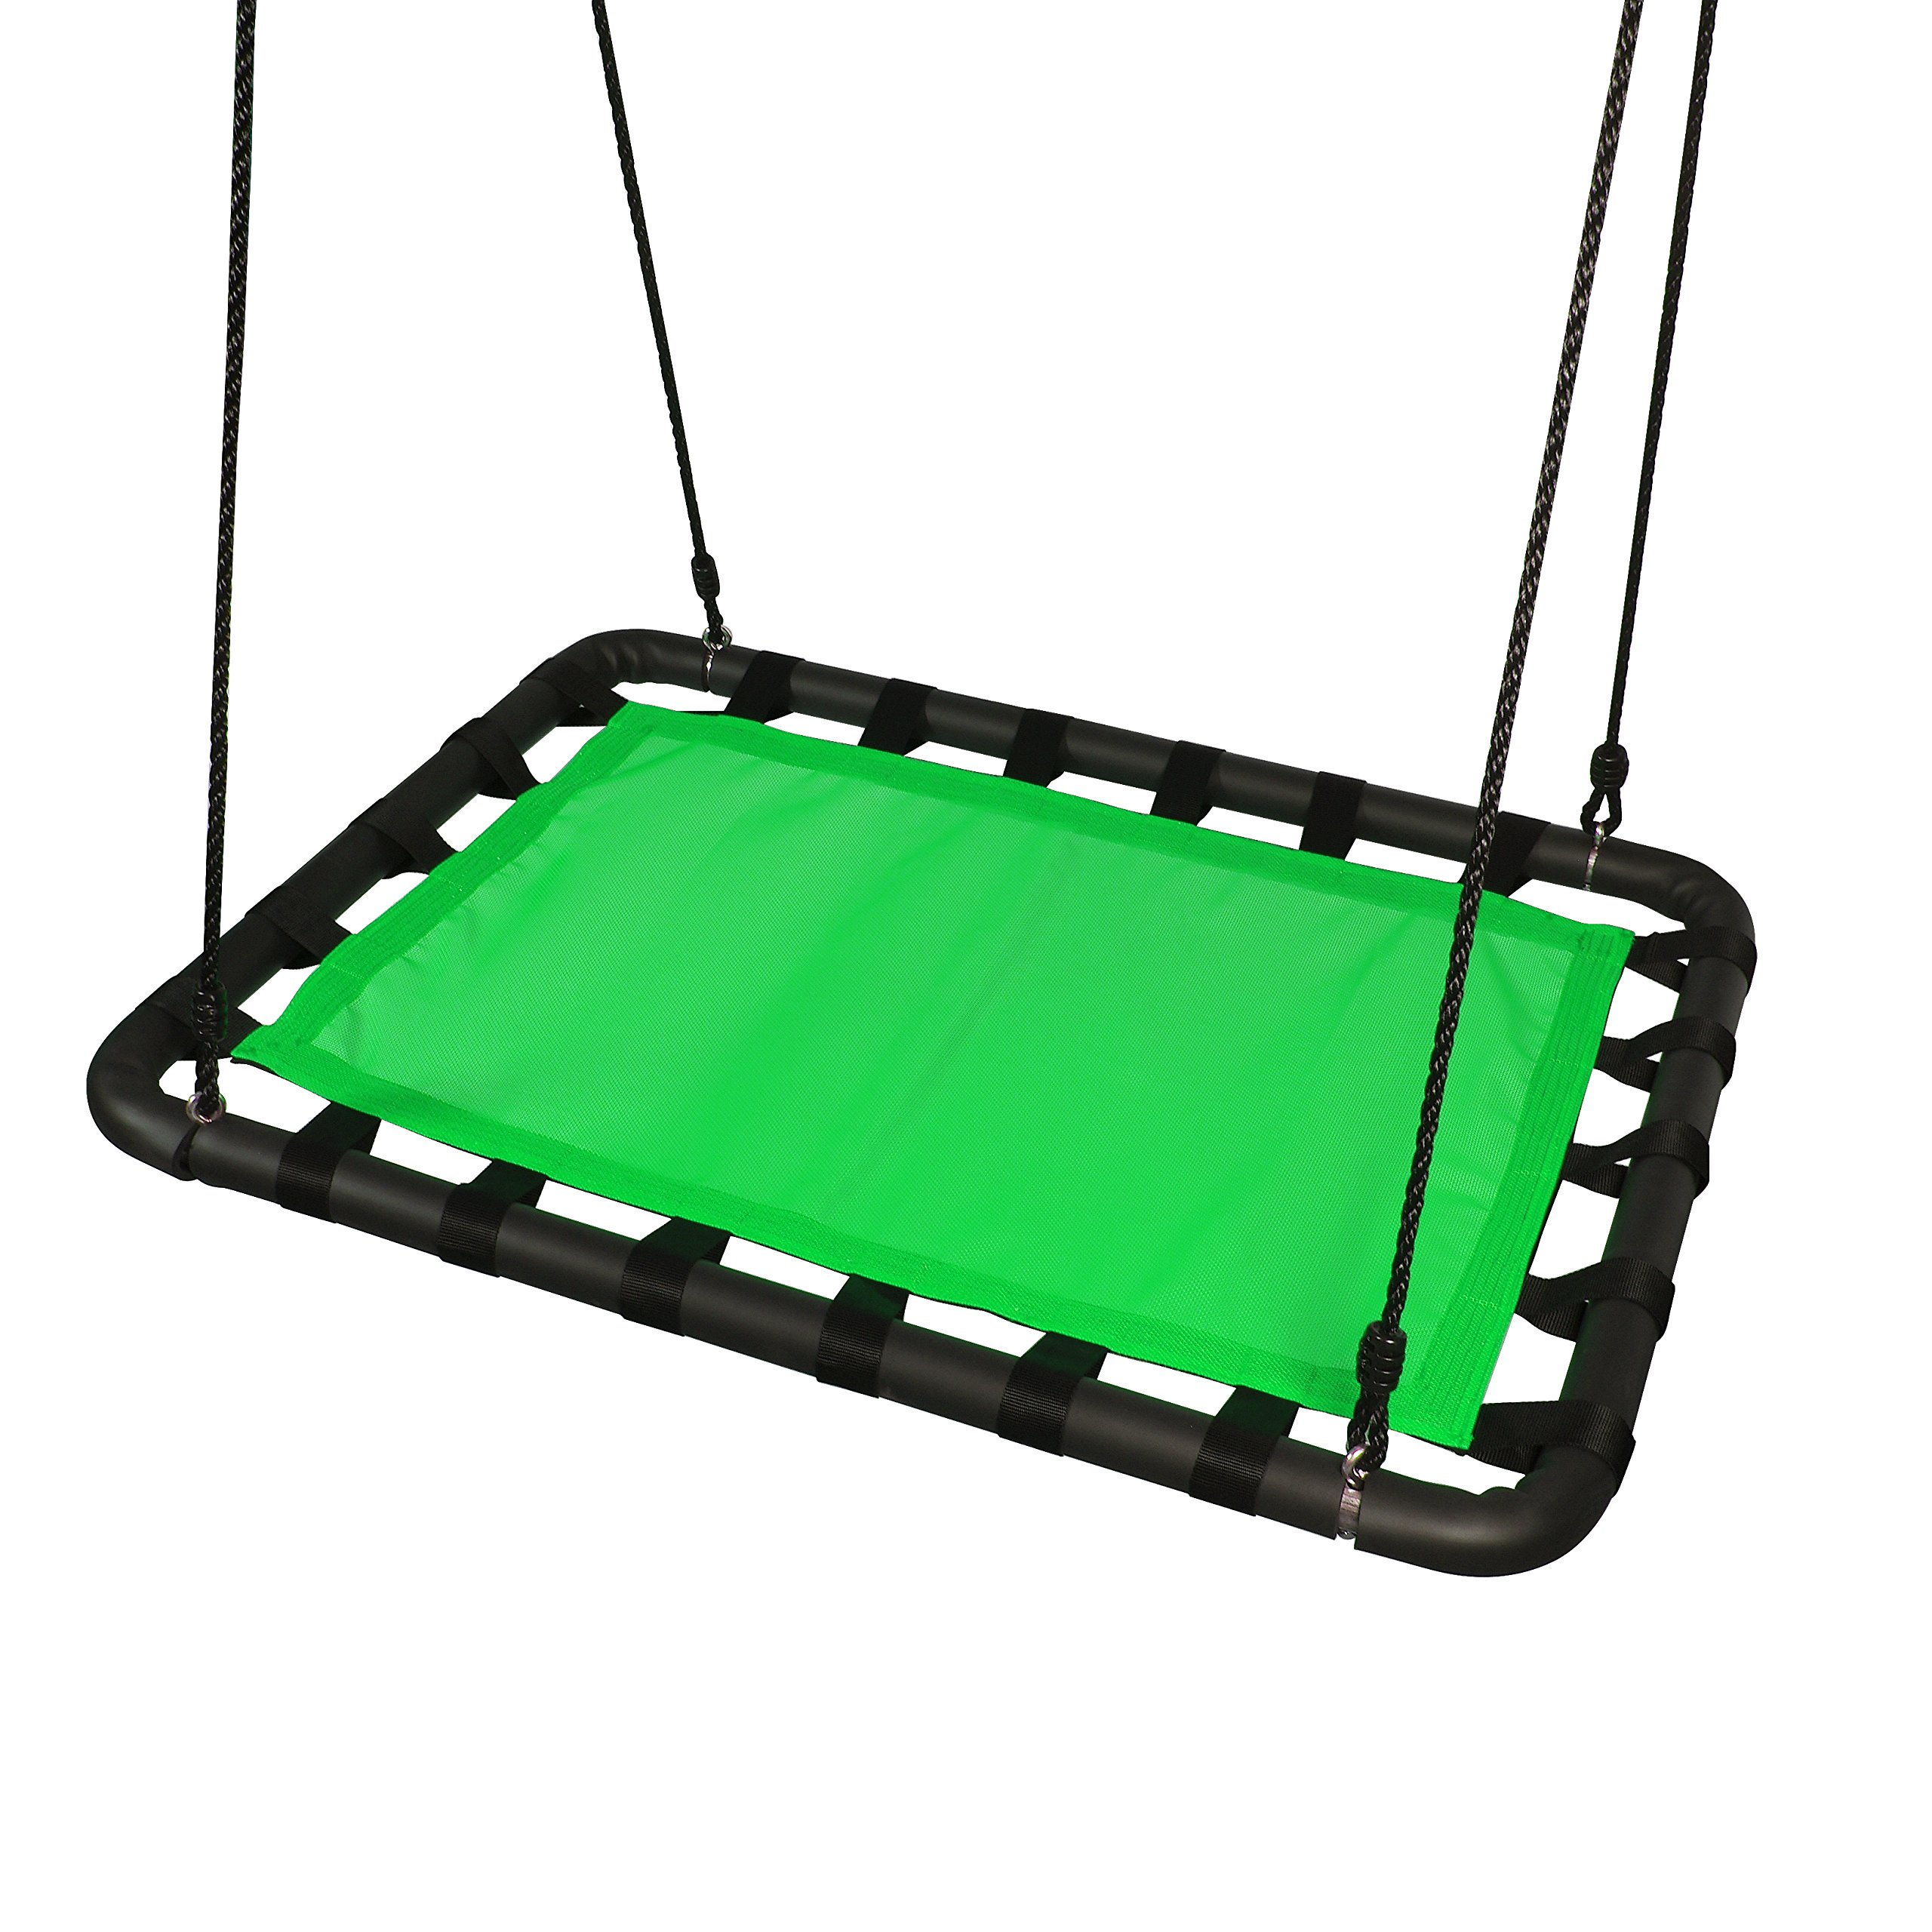 Platform Swing Set Accessories Replacement - 40in L x 30in W, Outdoor Tree Swing Heavy Duty Materials, Room for Multiple Toddler, Kids, Children Swing Playhouse, Playground By ROBINHOOD (green) by Robin Hood